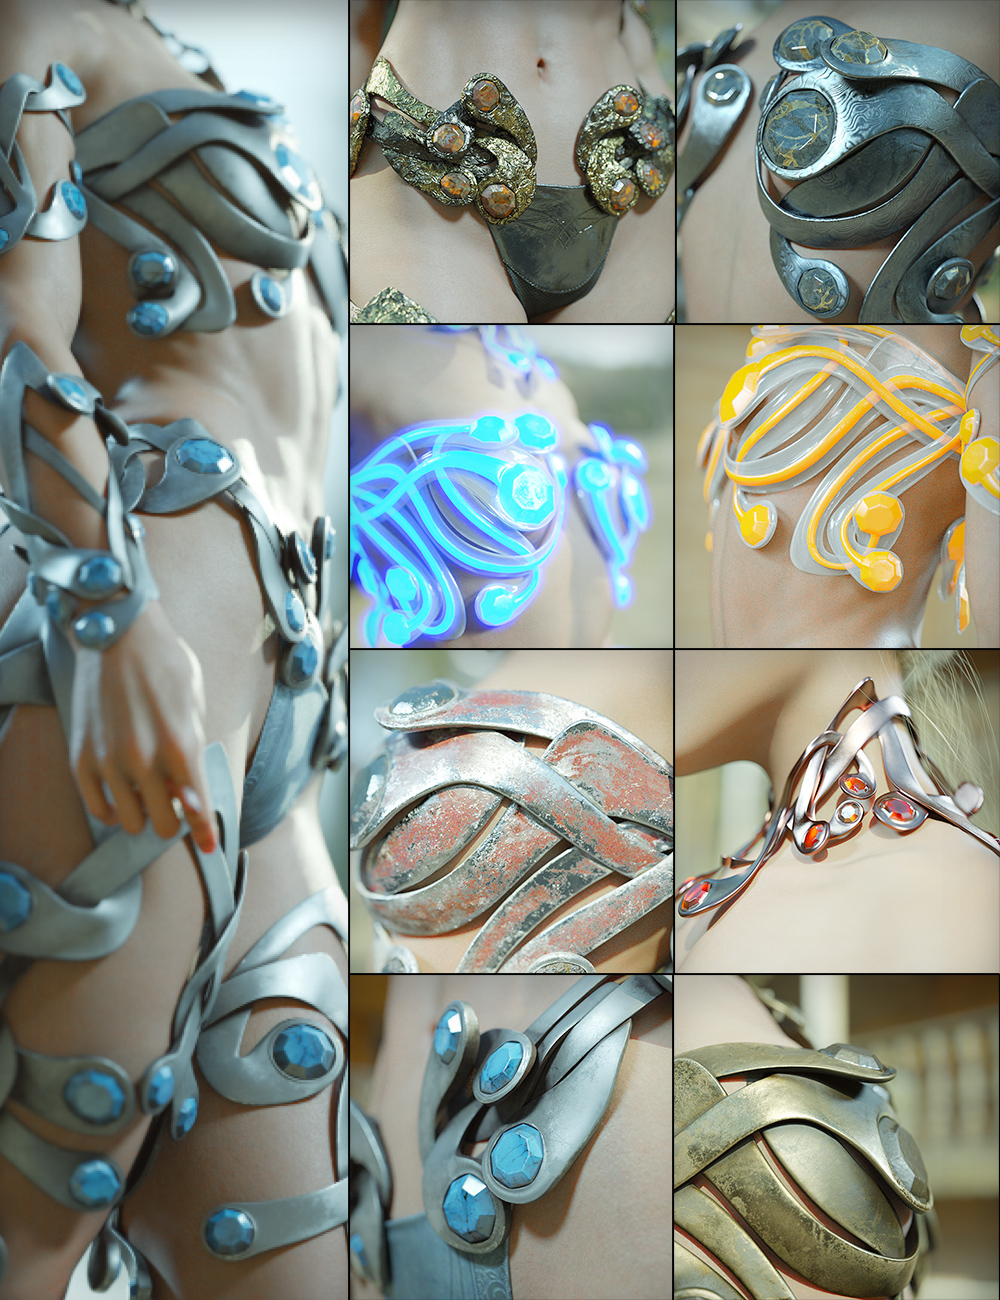 Styles Vol. 2 for Enchanting Ornaments by: Aeon Soul, 3D Models by Daz 3D